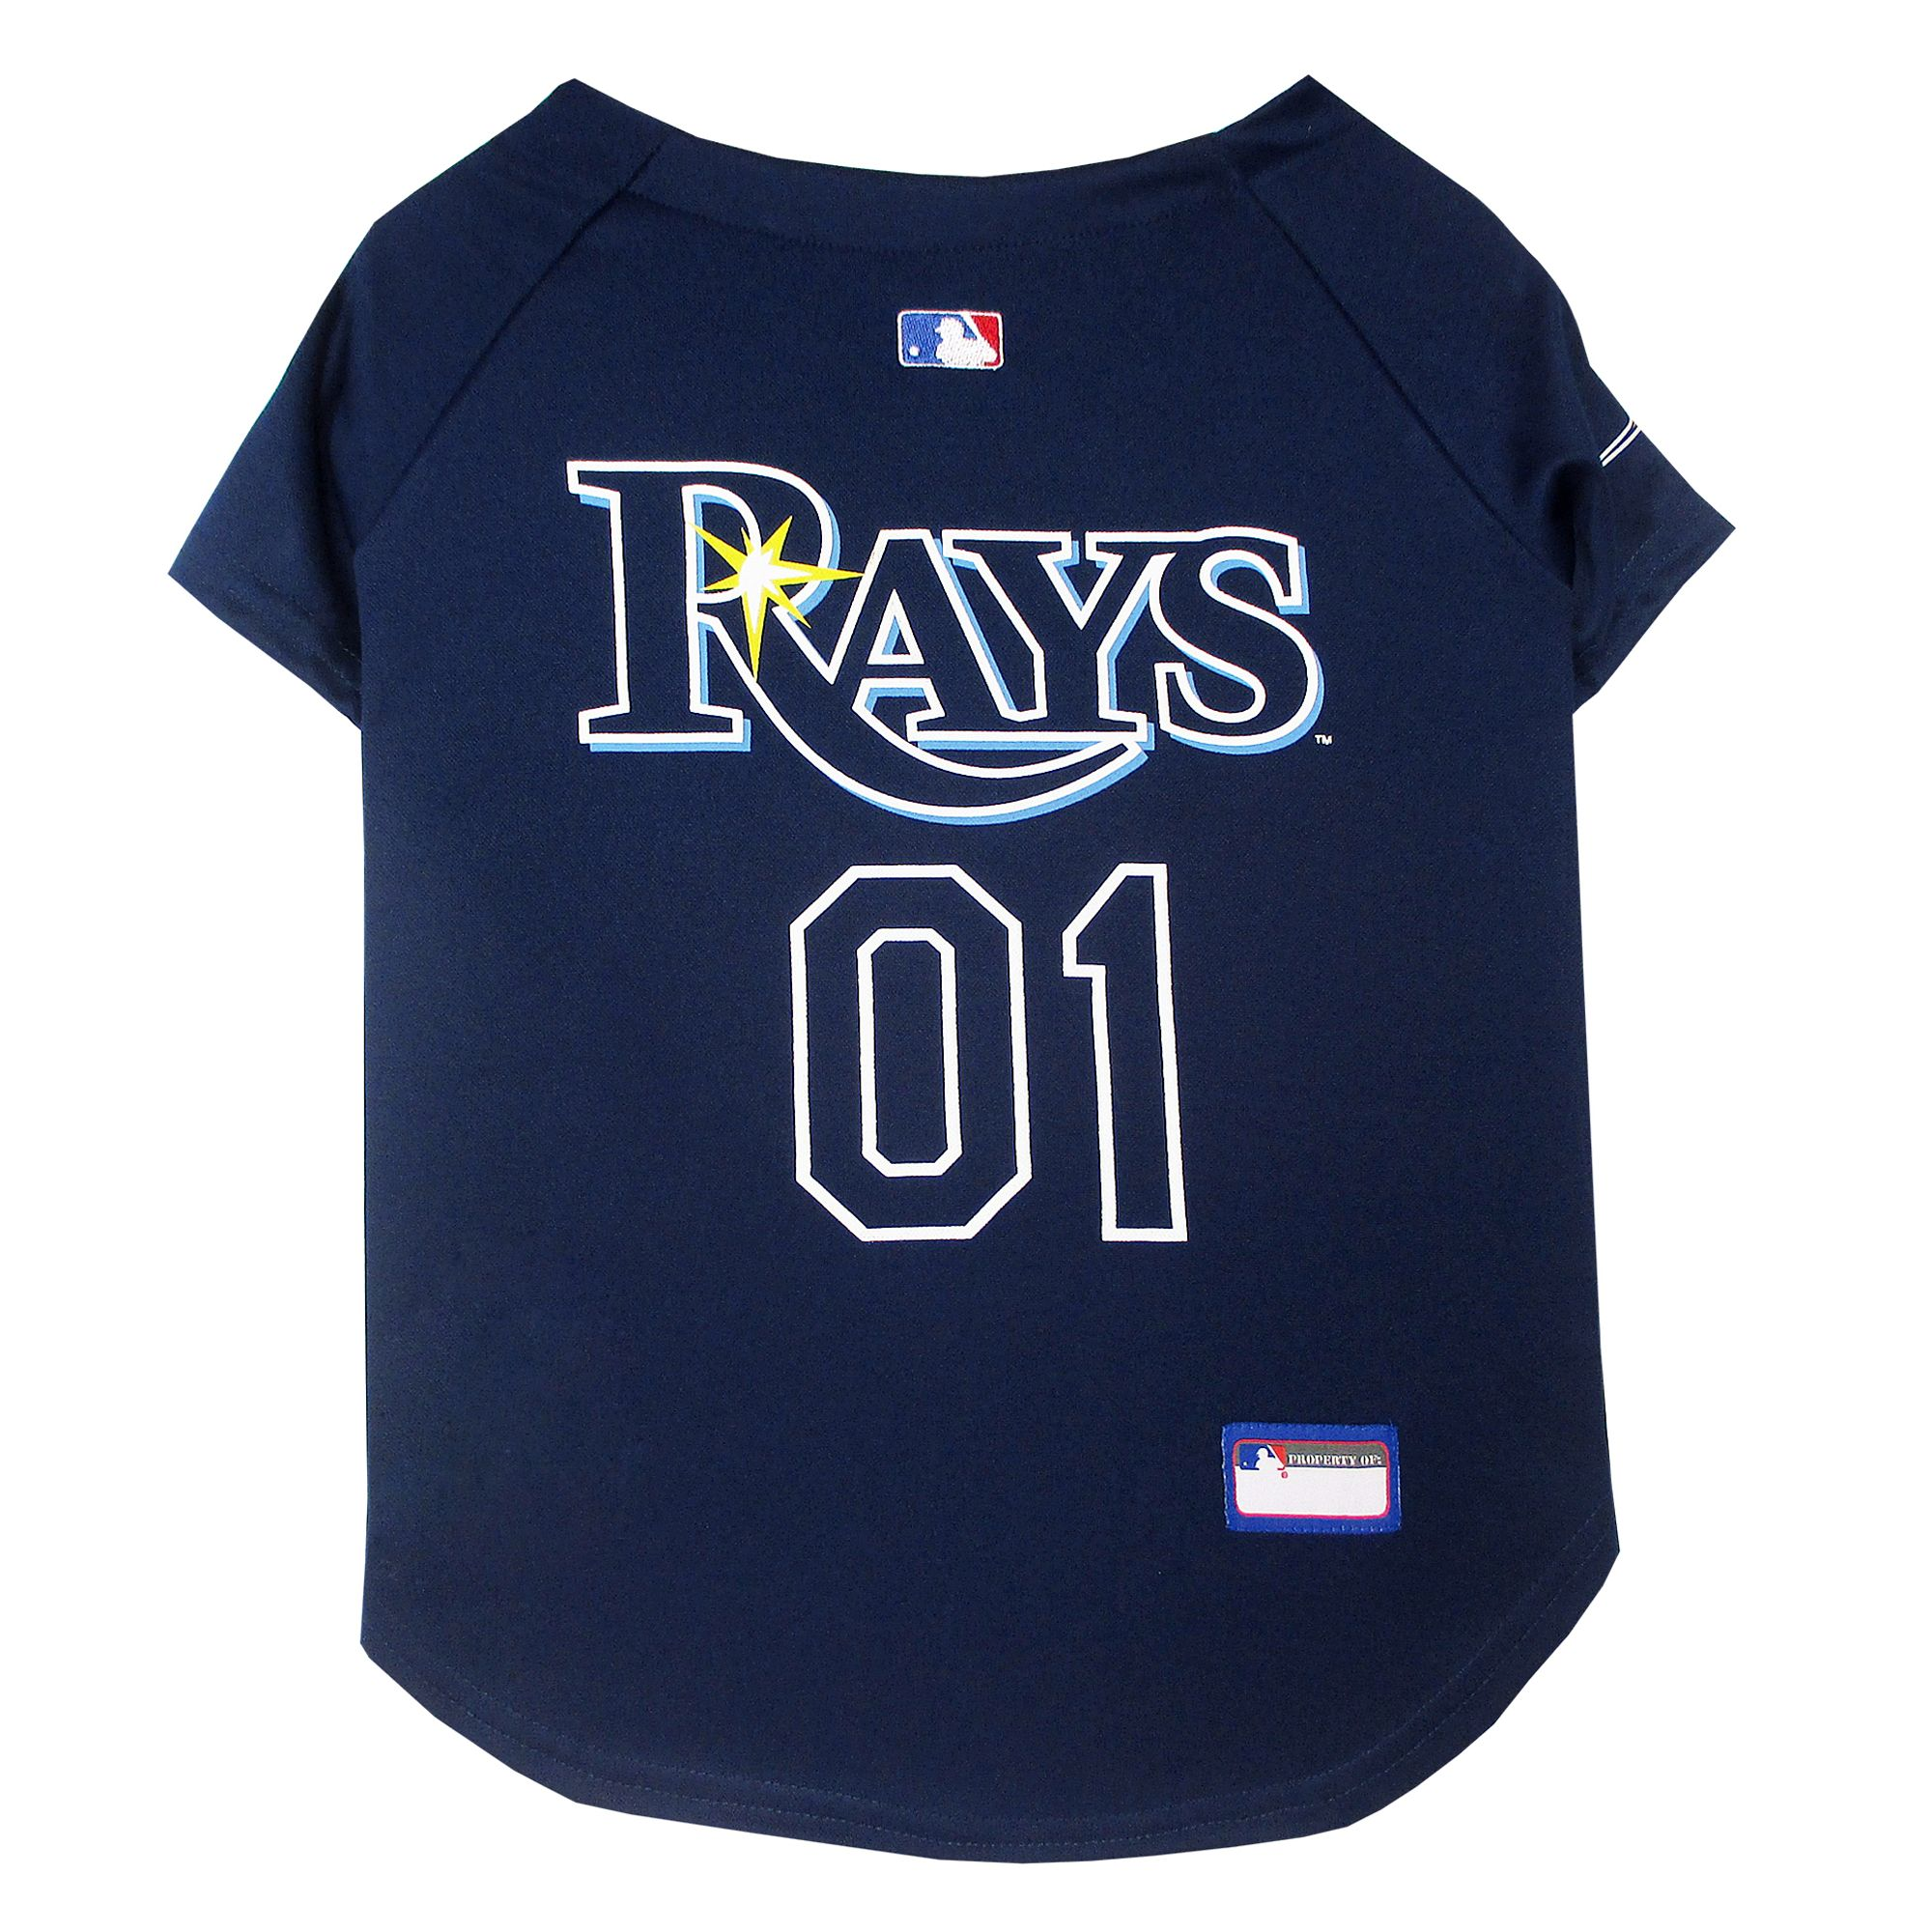 Tampa Bay Rays MLB Jersey size: Medium 5252313